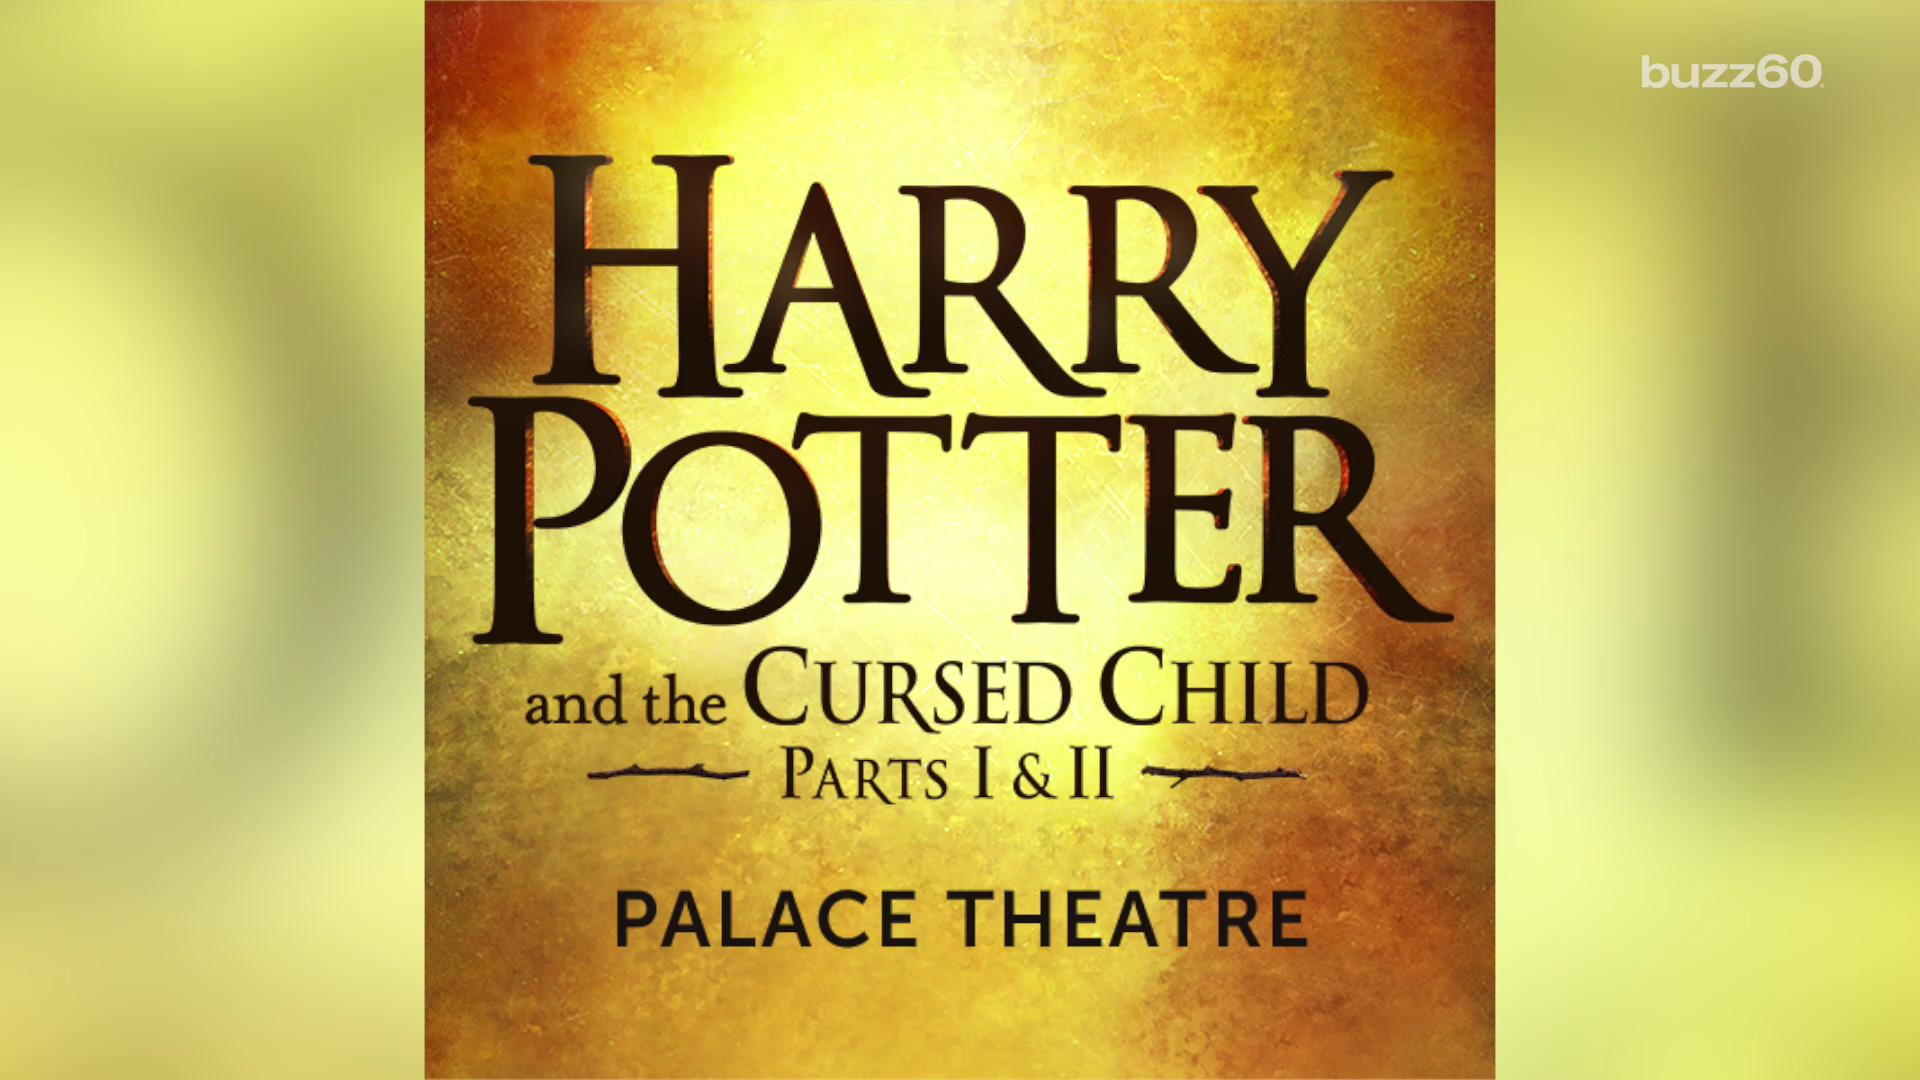 Harry Potter grows up in a new original play, 'Harry Potter and the Cursed Child.' As Leigh Scheps (@LeighTVReporter) explains, it's the first official Harry Potter story to be presented on stage.